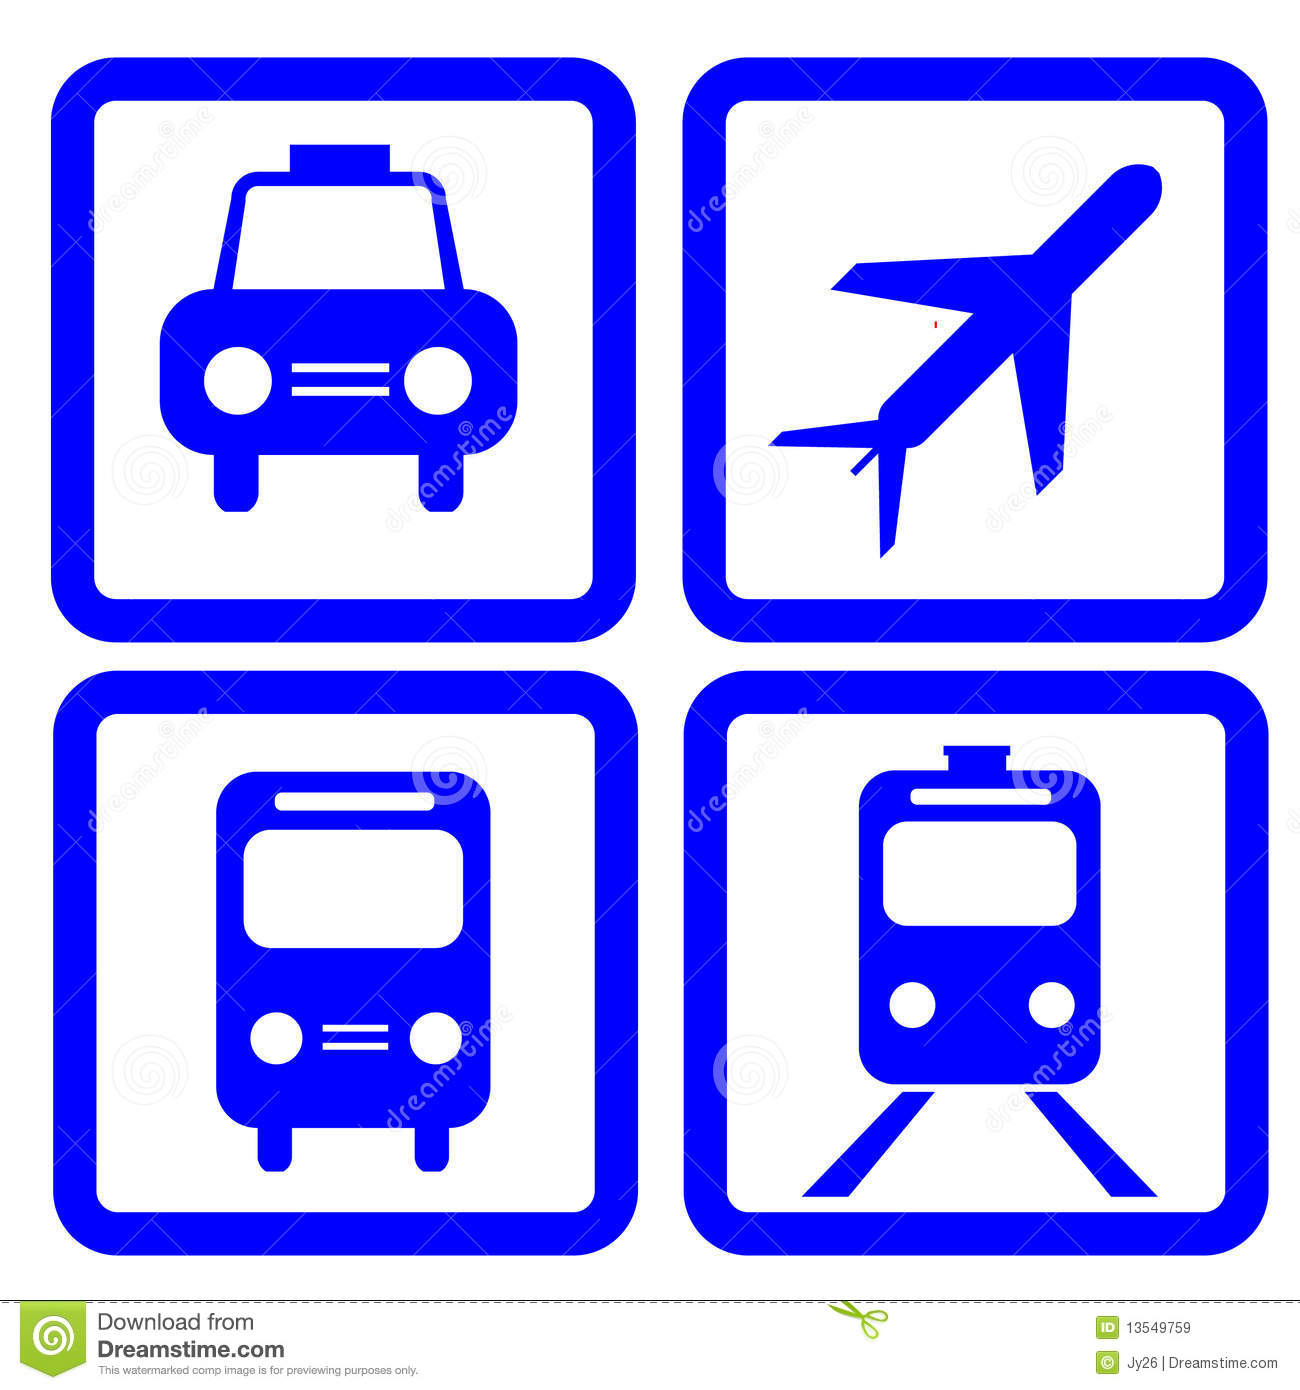 helicopter icon with Royalty Free Stock Images Transportation Icon Image13549759 on Police Story 4 Jackie Chans First Strike also Royalty Free Stock Images Transportation Icon Image13549759 further Royalty Free Stock Photos Helicopter Airplane Image20693638 together with Transportation further Google Maps Adds New Feature Distance Measurement Tool.